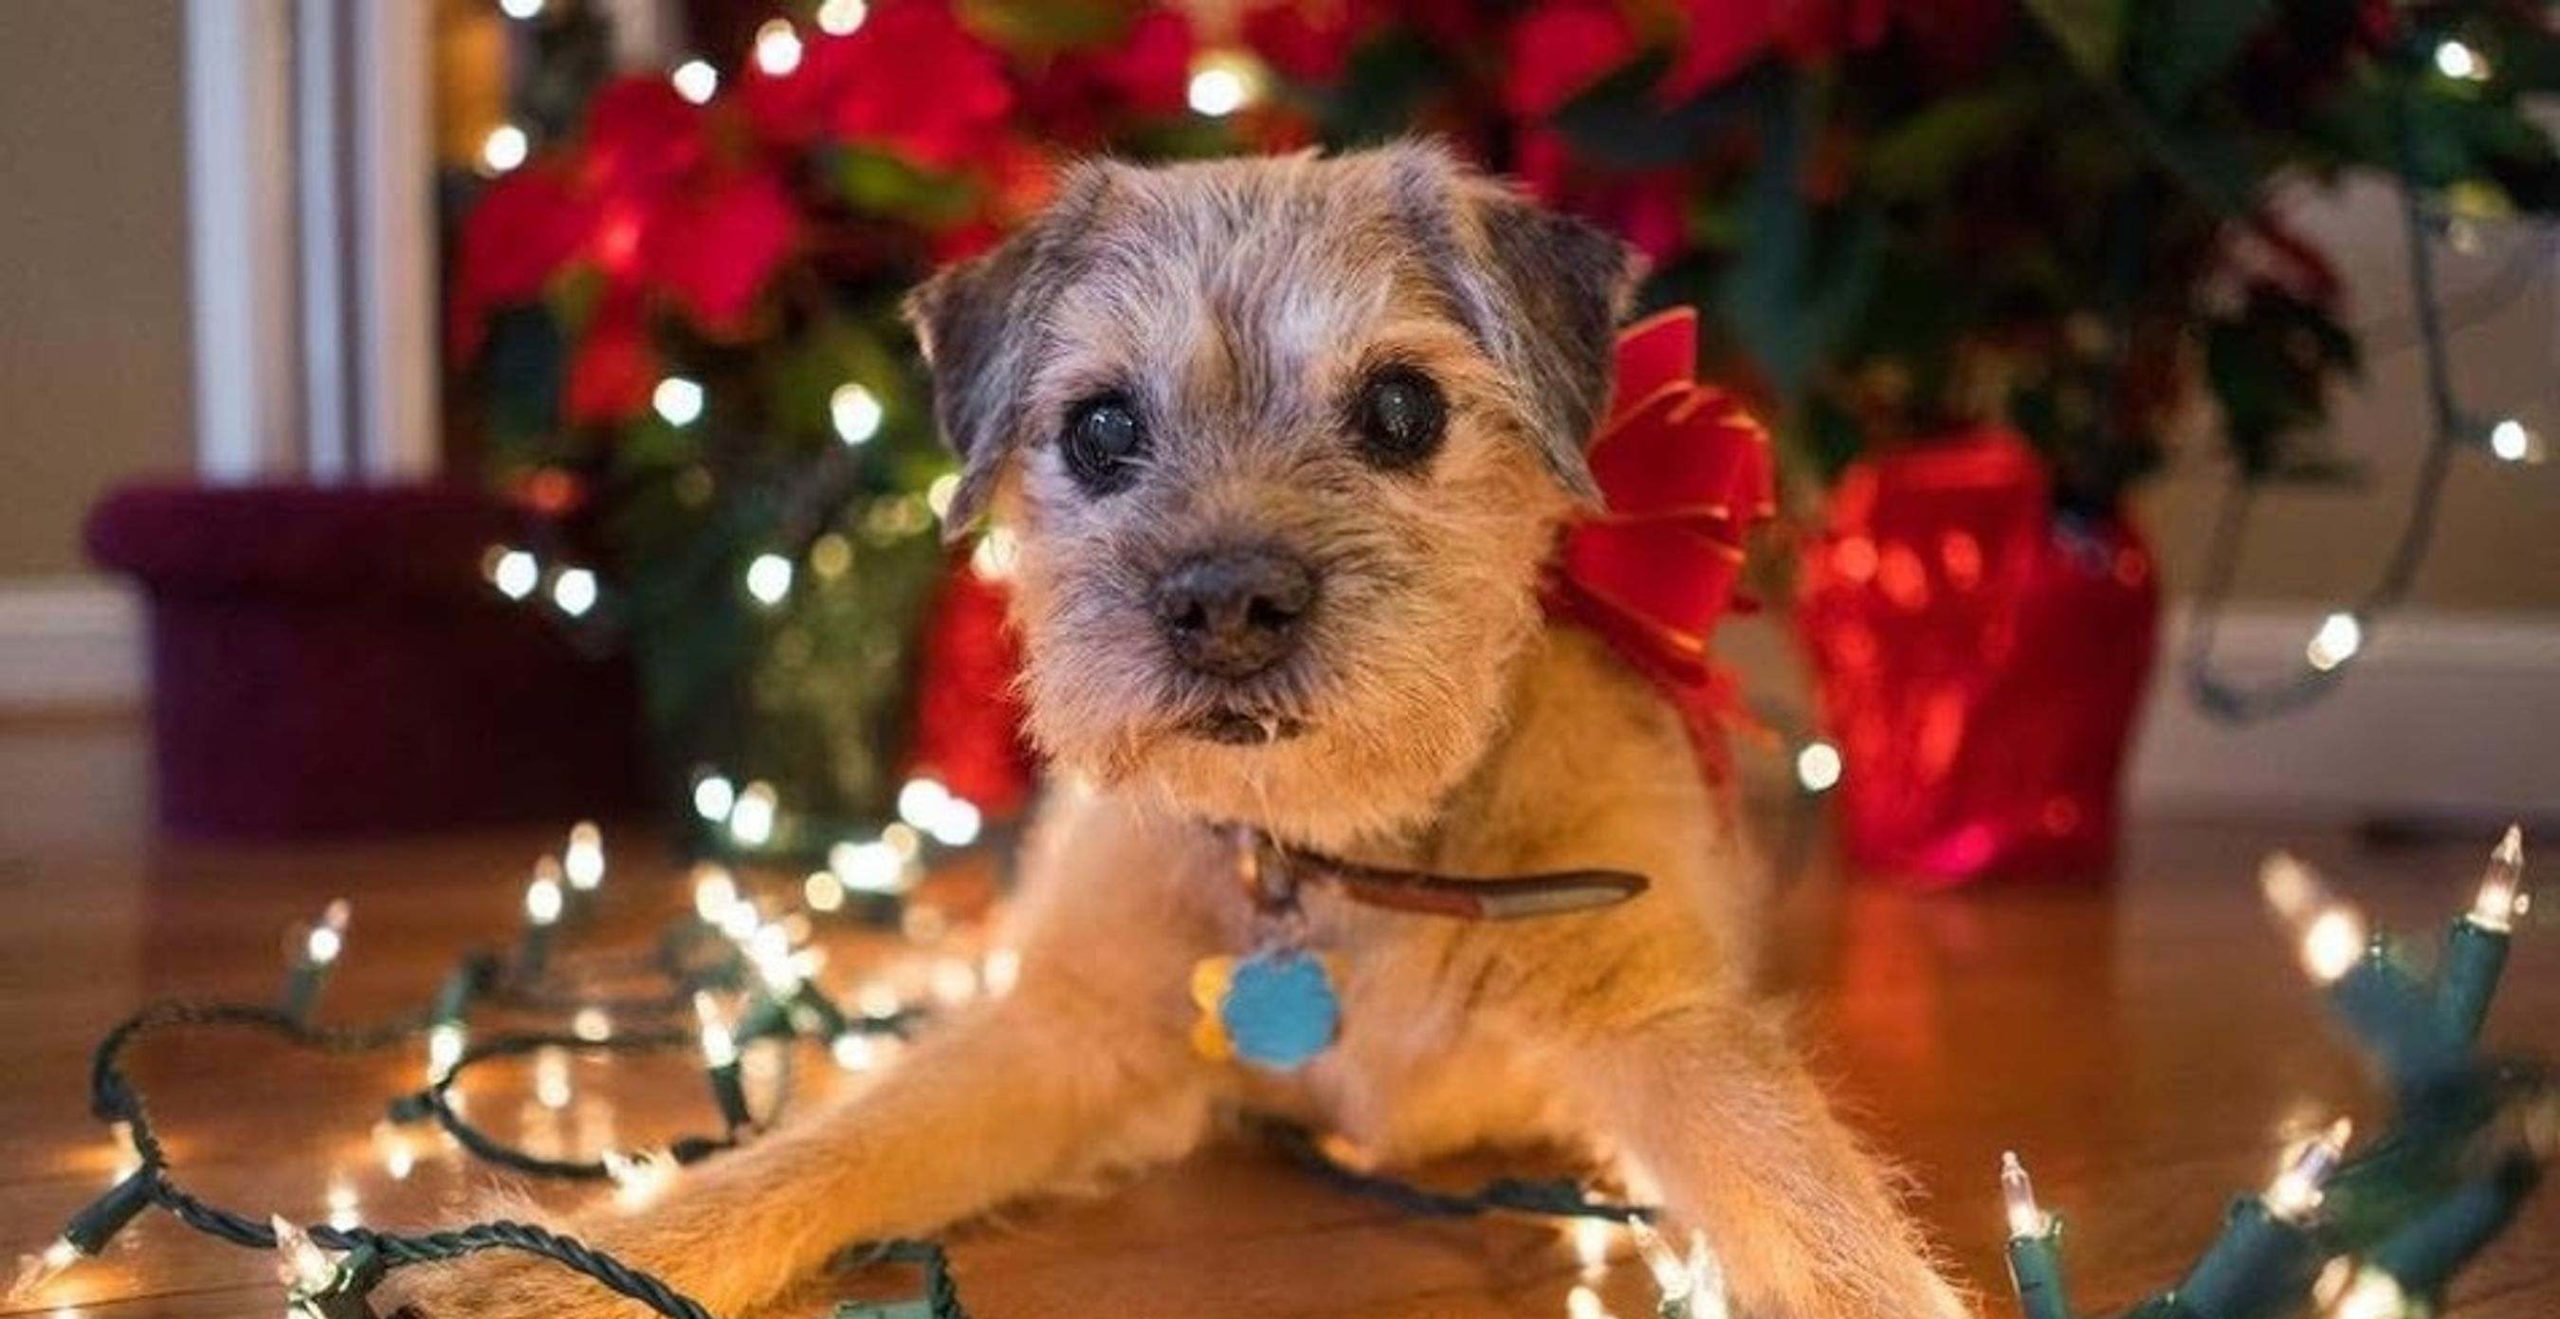 Border Terrier Dog Home Boarding Christmas Tree Lights Barking Mad